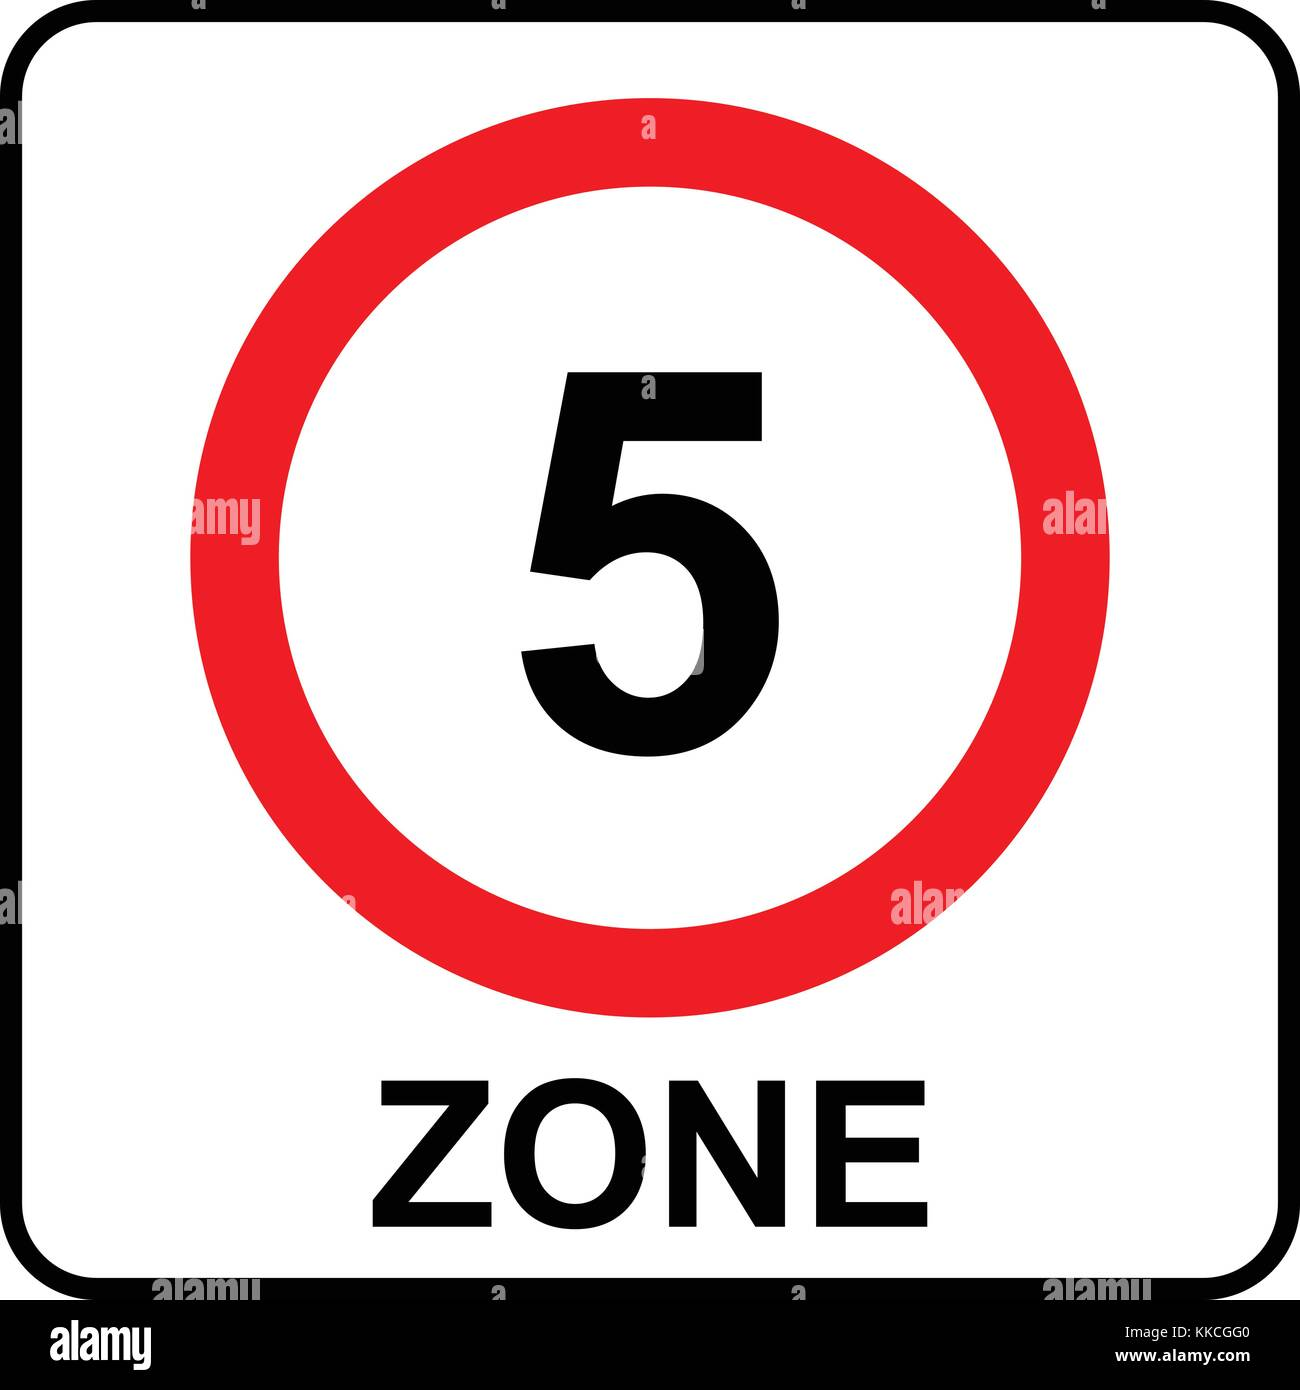 VARIOUS SIGN /& STICKER OPTIONS 5KPH SIGN SHARED ZONE SPEED LIMIT 5 KPH SIGN